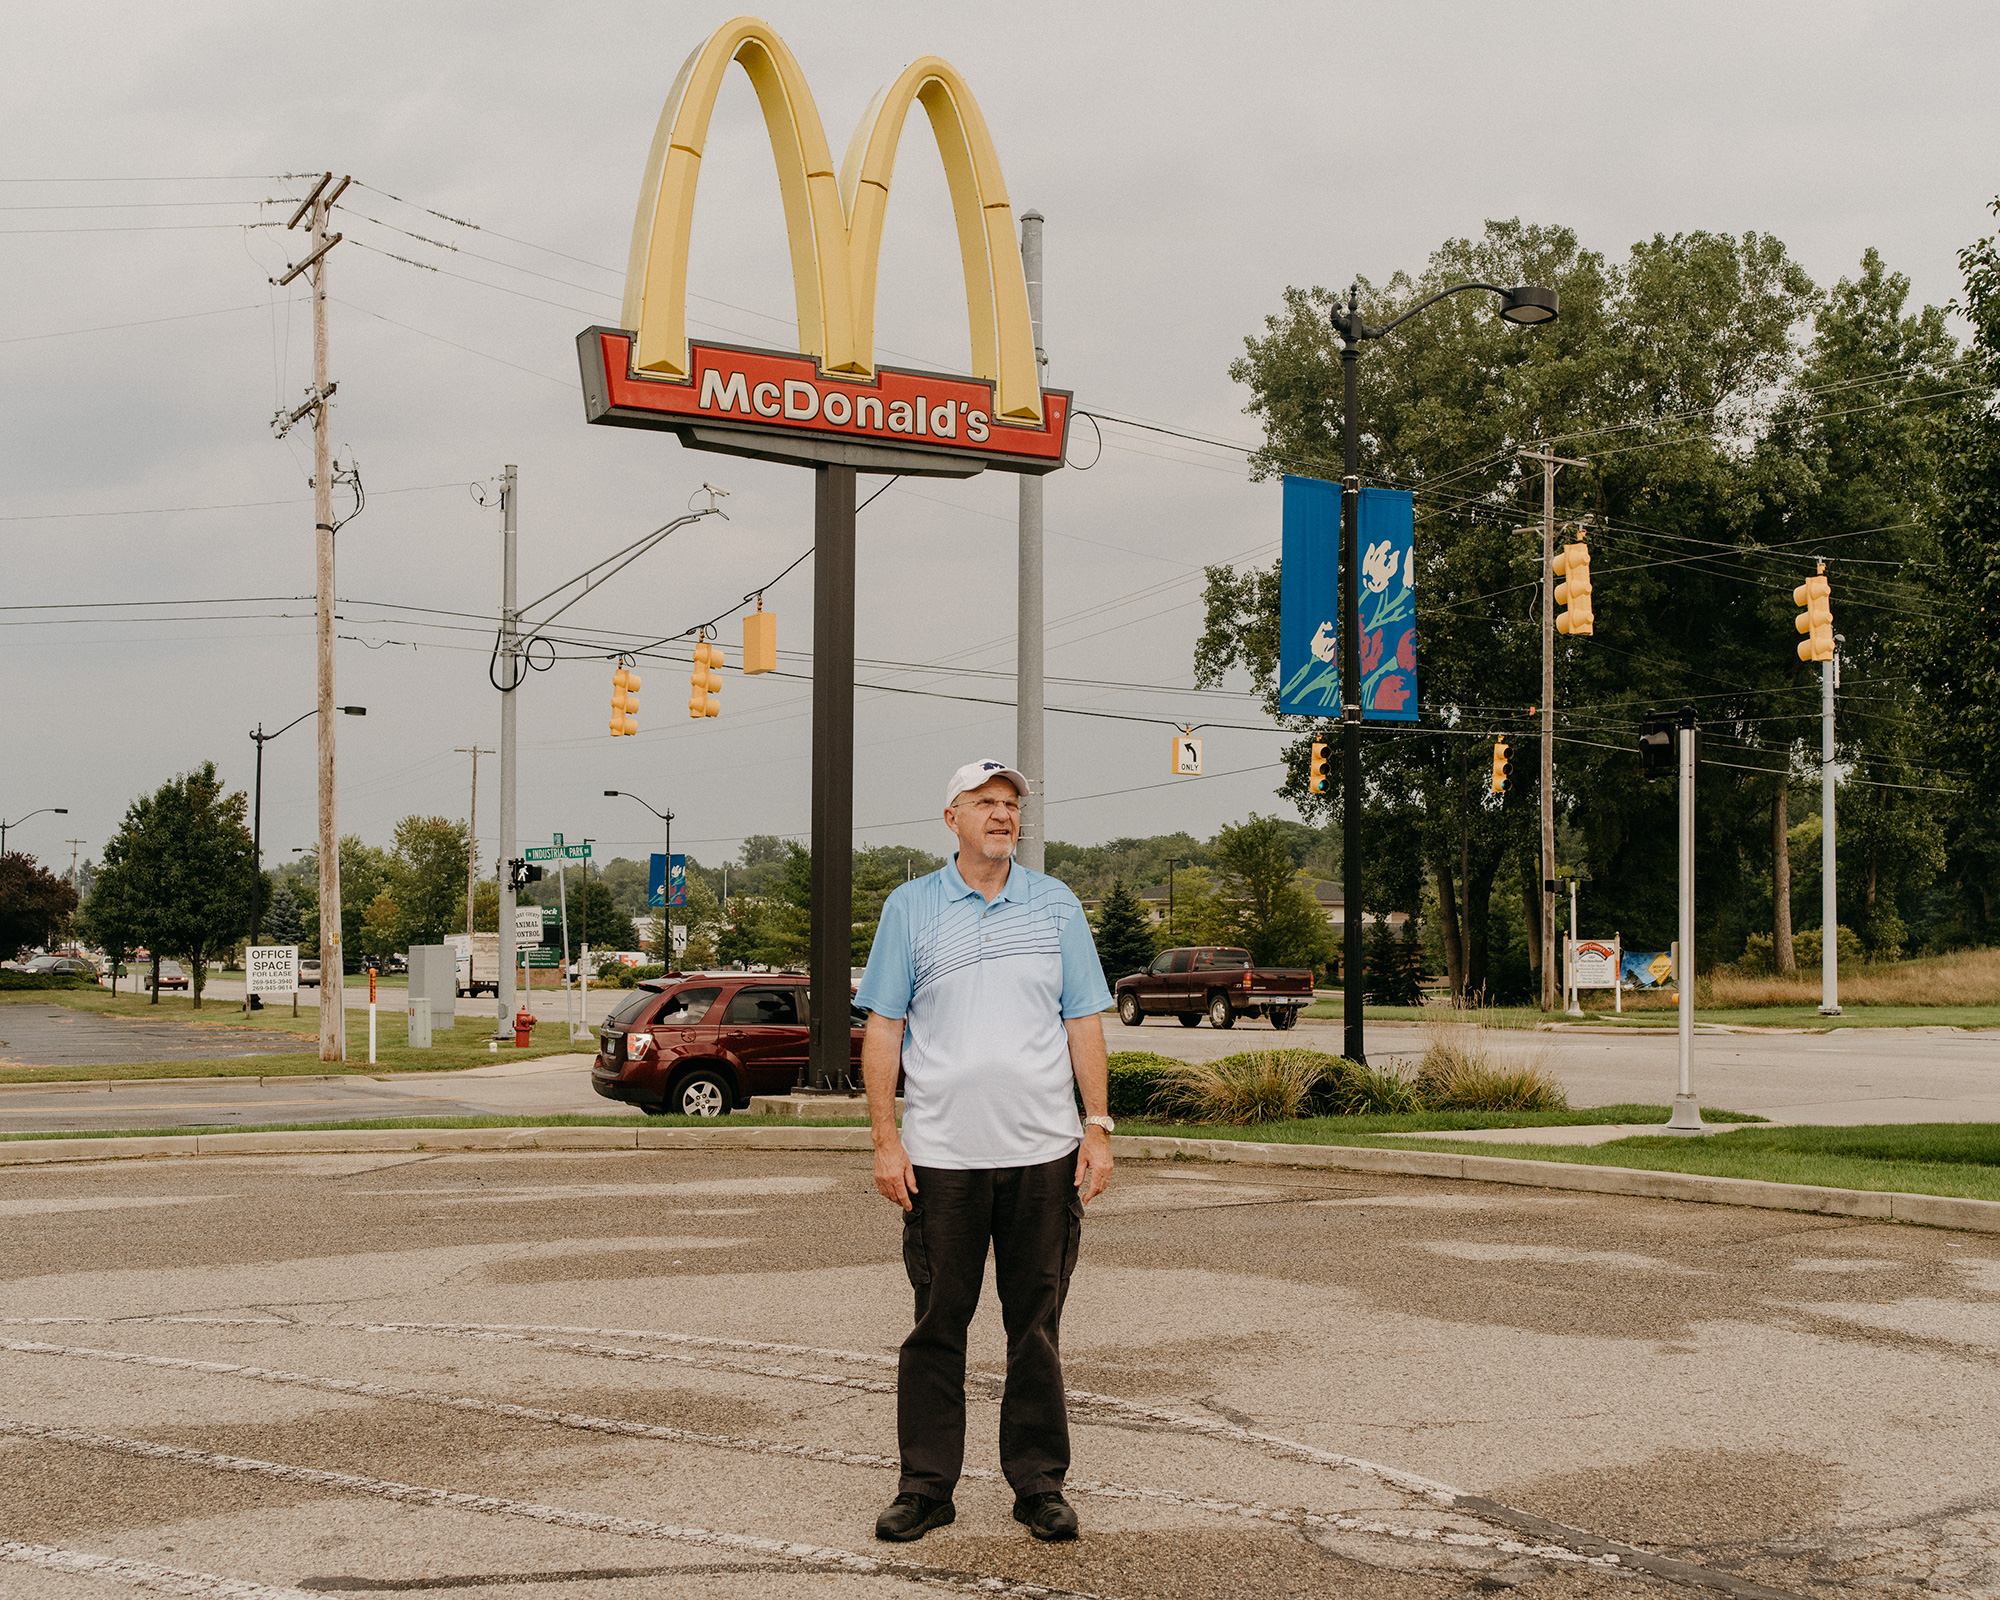 McRevolt: The Frustrating Life of the McDonald's Franchisee